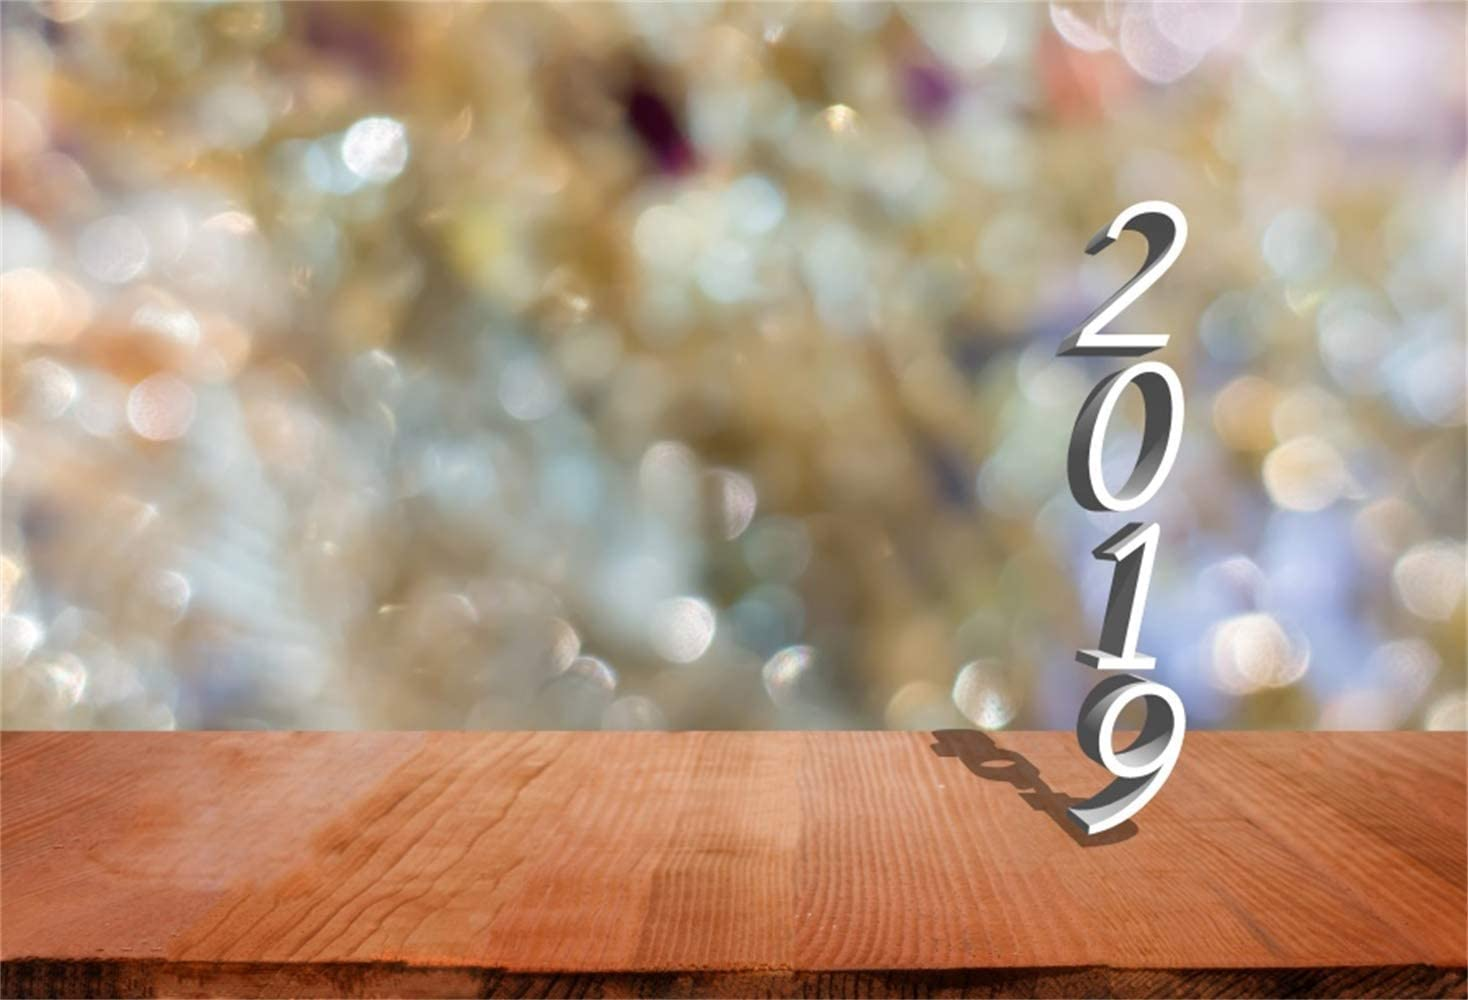 New Year 2019 Backdrop Vinyl 10x7ft Dreamlike Abstract Bokeh Haloes Wood Texture Floor Background Child Kids Adult Shoot New Year Celebration Party Banner Studio Props